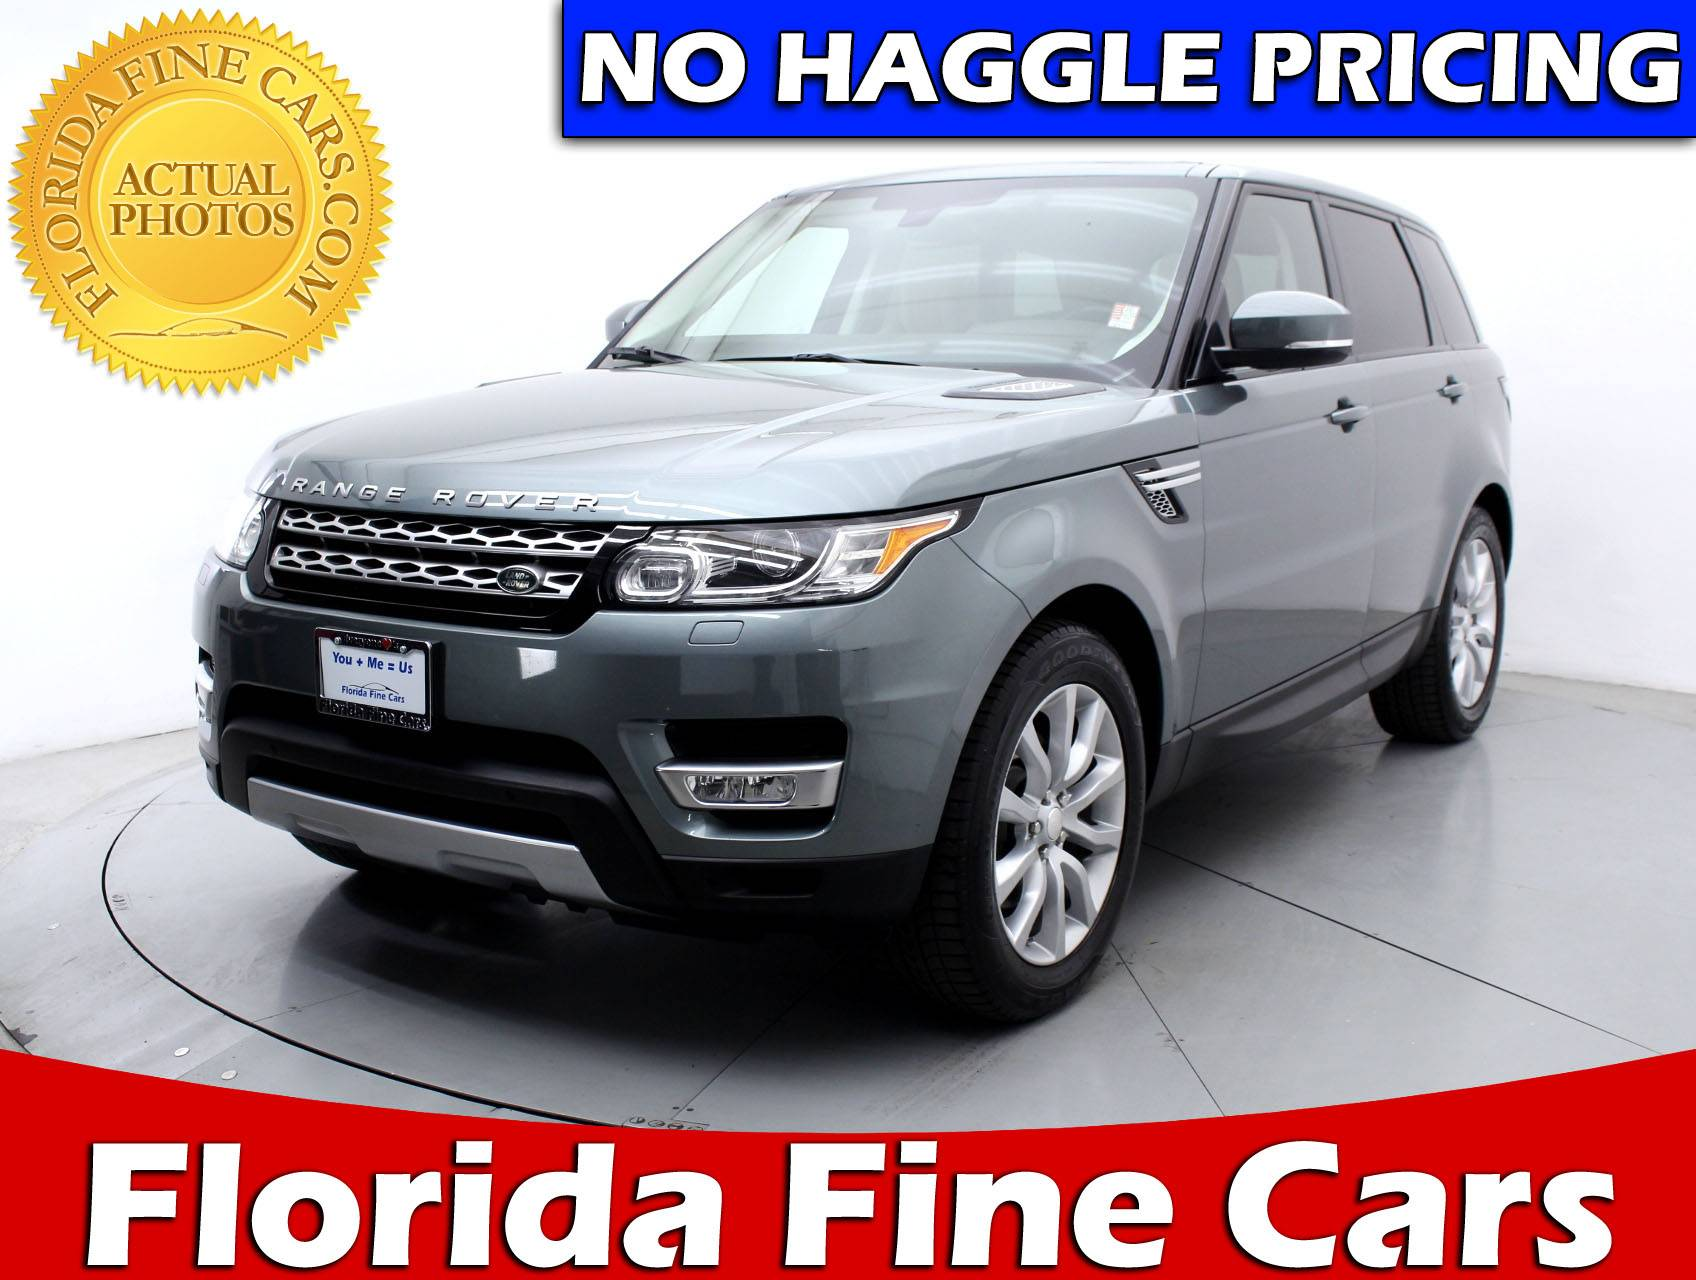 rover sale for t touch in ohio can old range classic goat news divide rovers land new this great cant why landrover